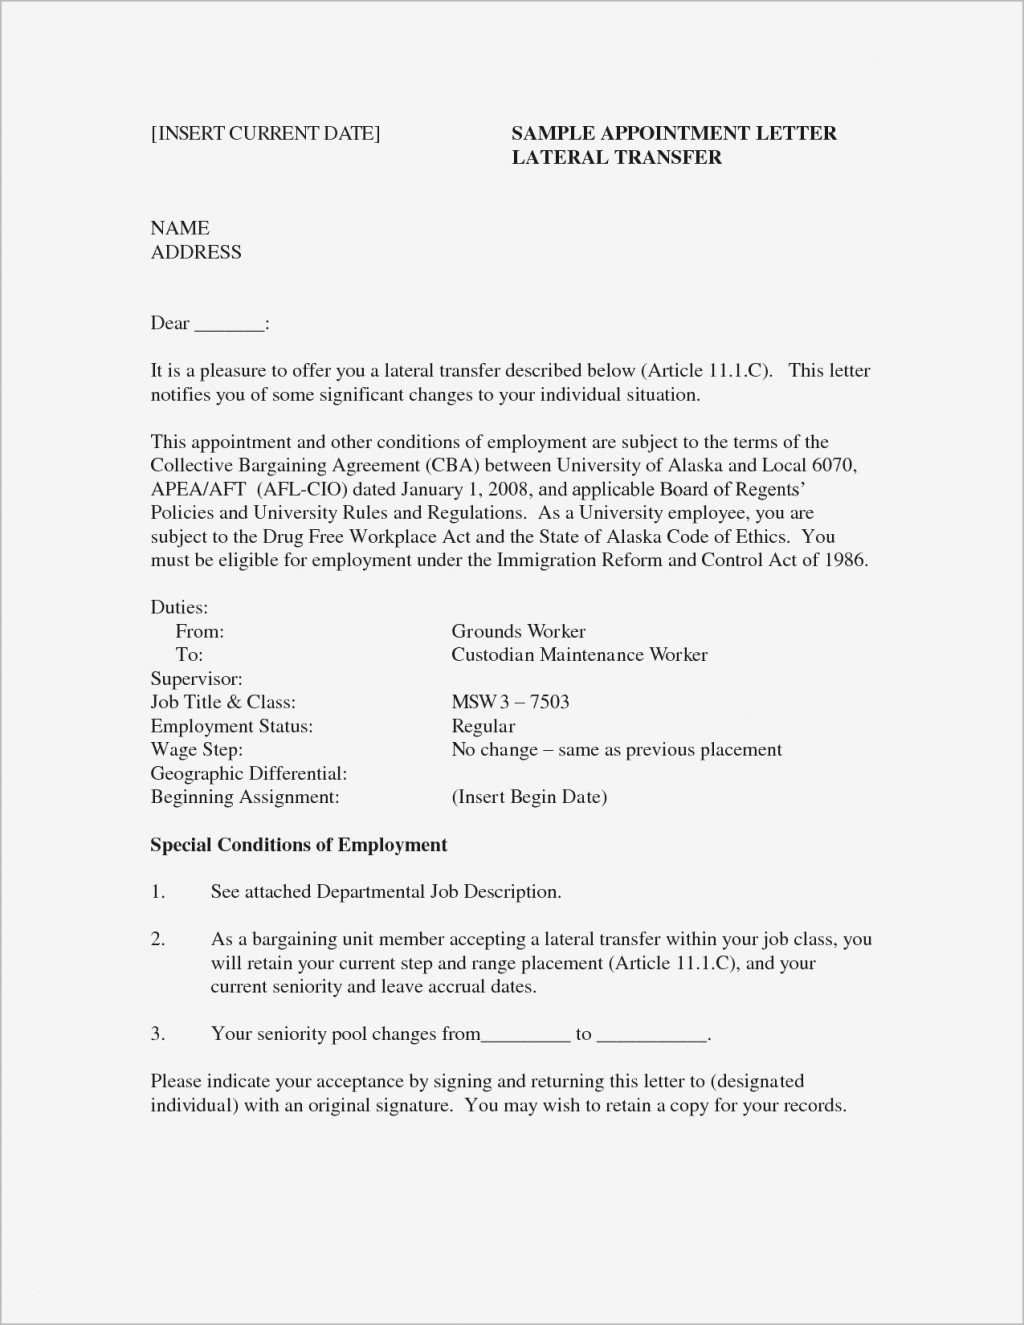 016 Resume For No Previous Work Experience Awesome Education Job Sample Of How To Write Research Paper Online Sensational A Course Large